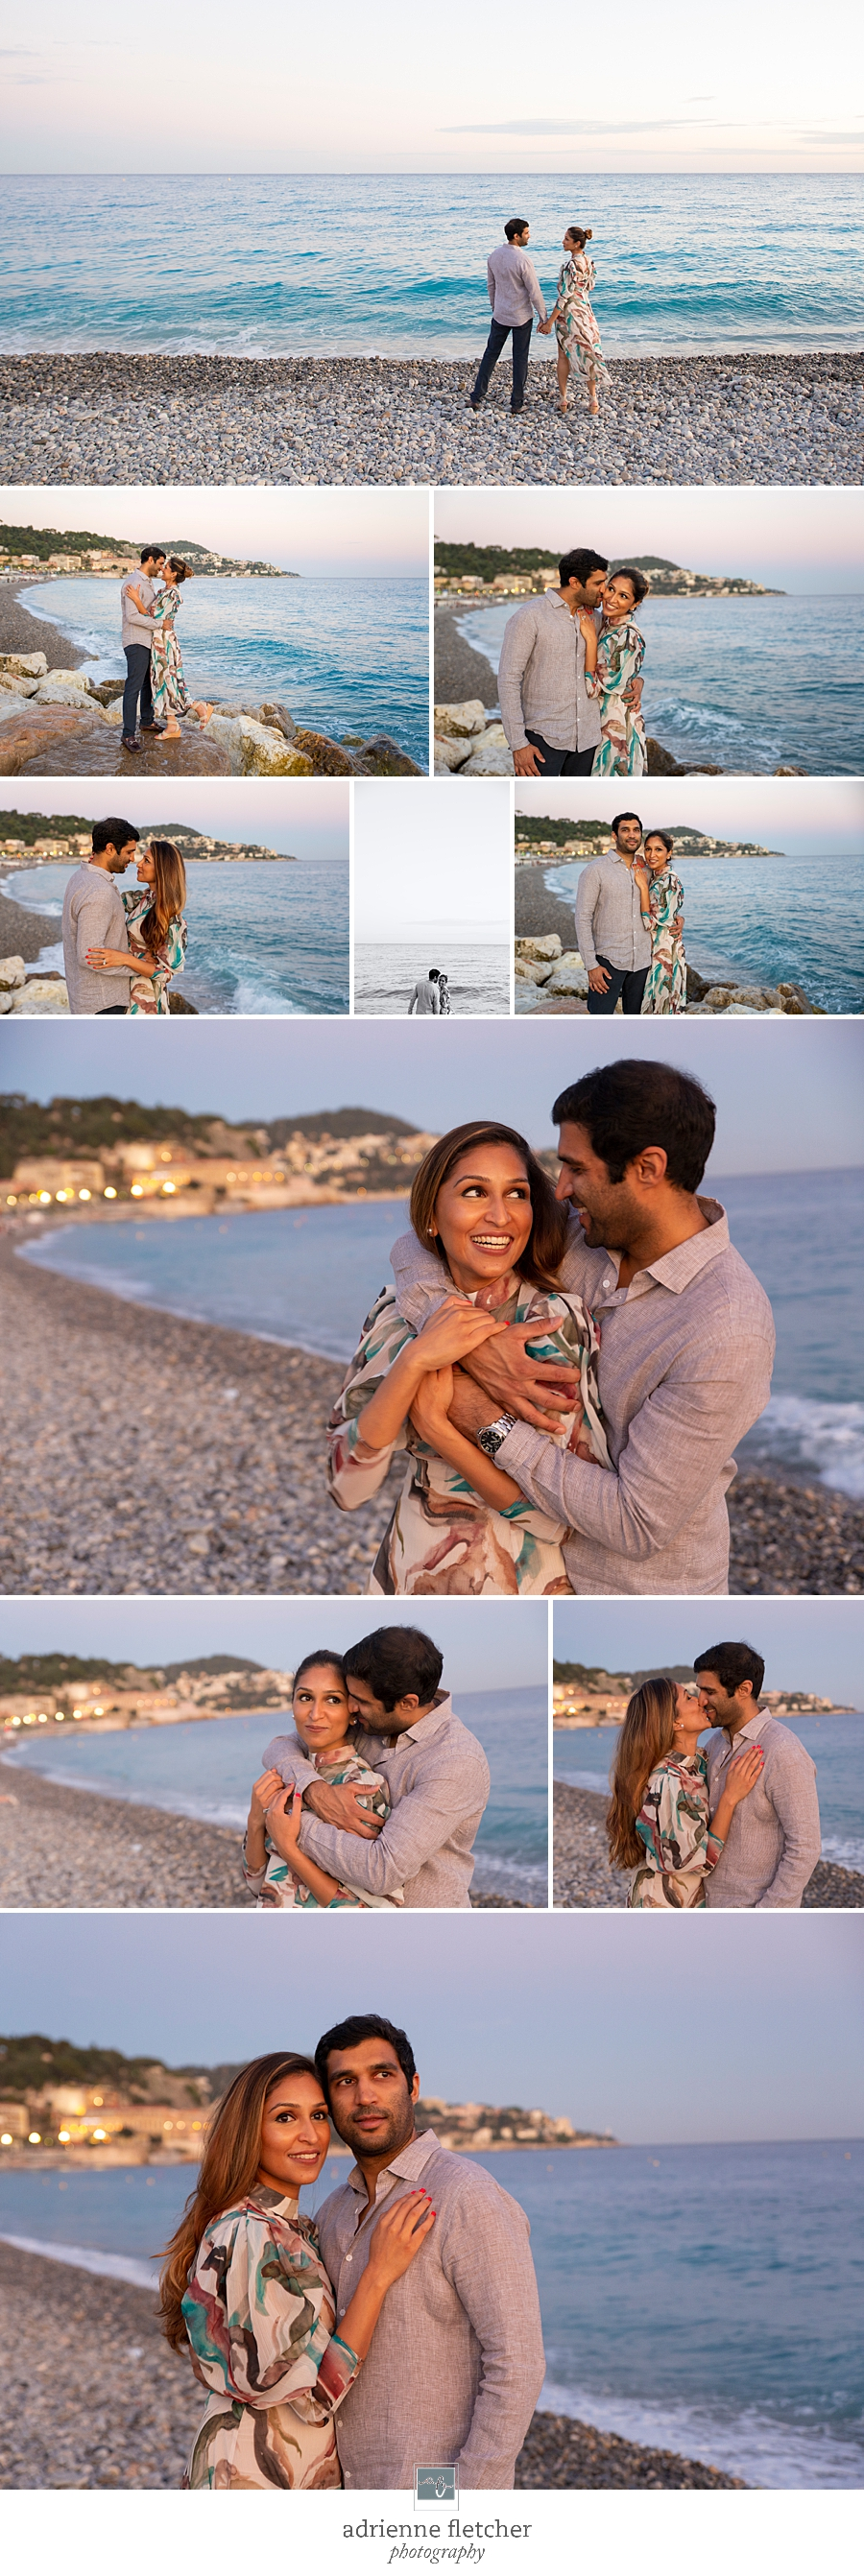 portraits of couple in Nice, France